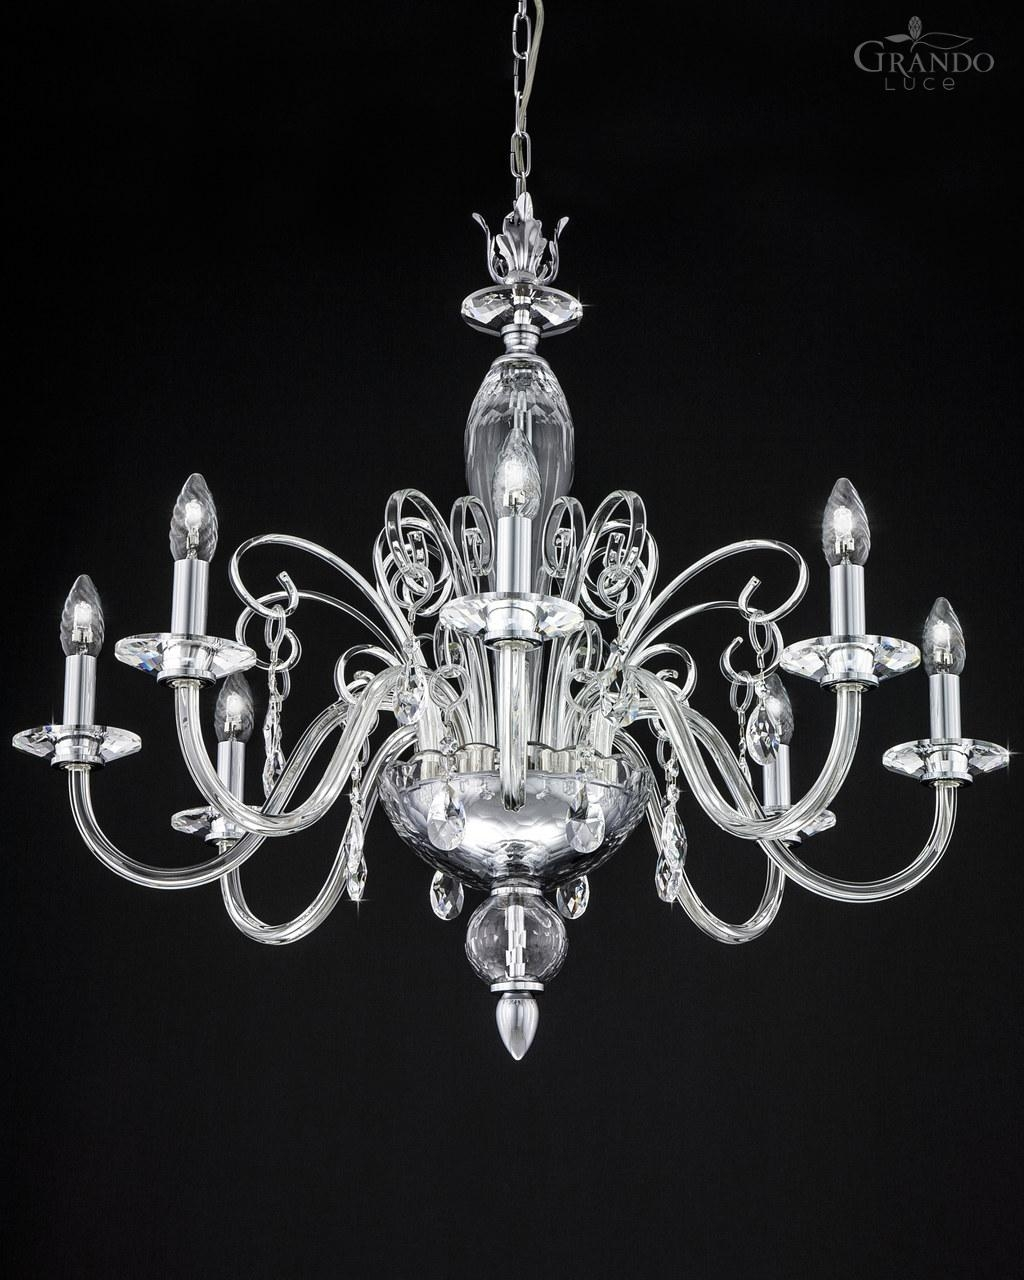 1208 Ch Chrome Crystal Chandelier With Swarovski Elements Intended For Chrome Chandelier (View 10 of 15)